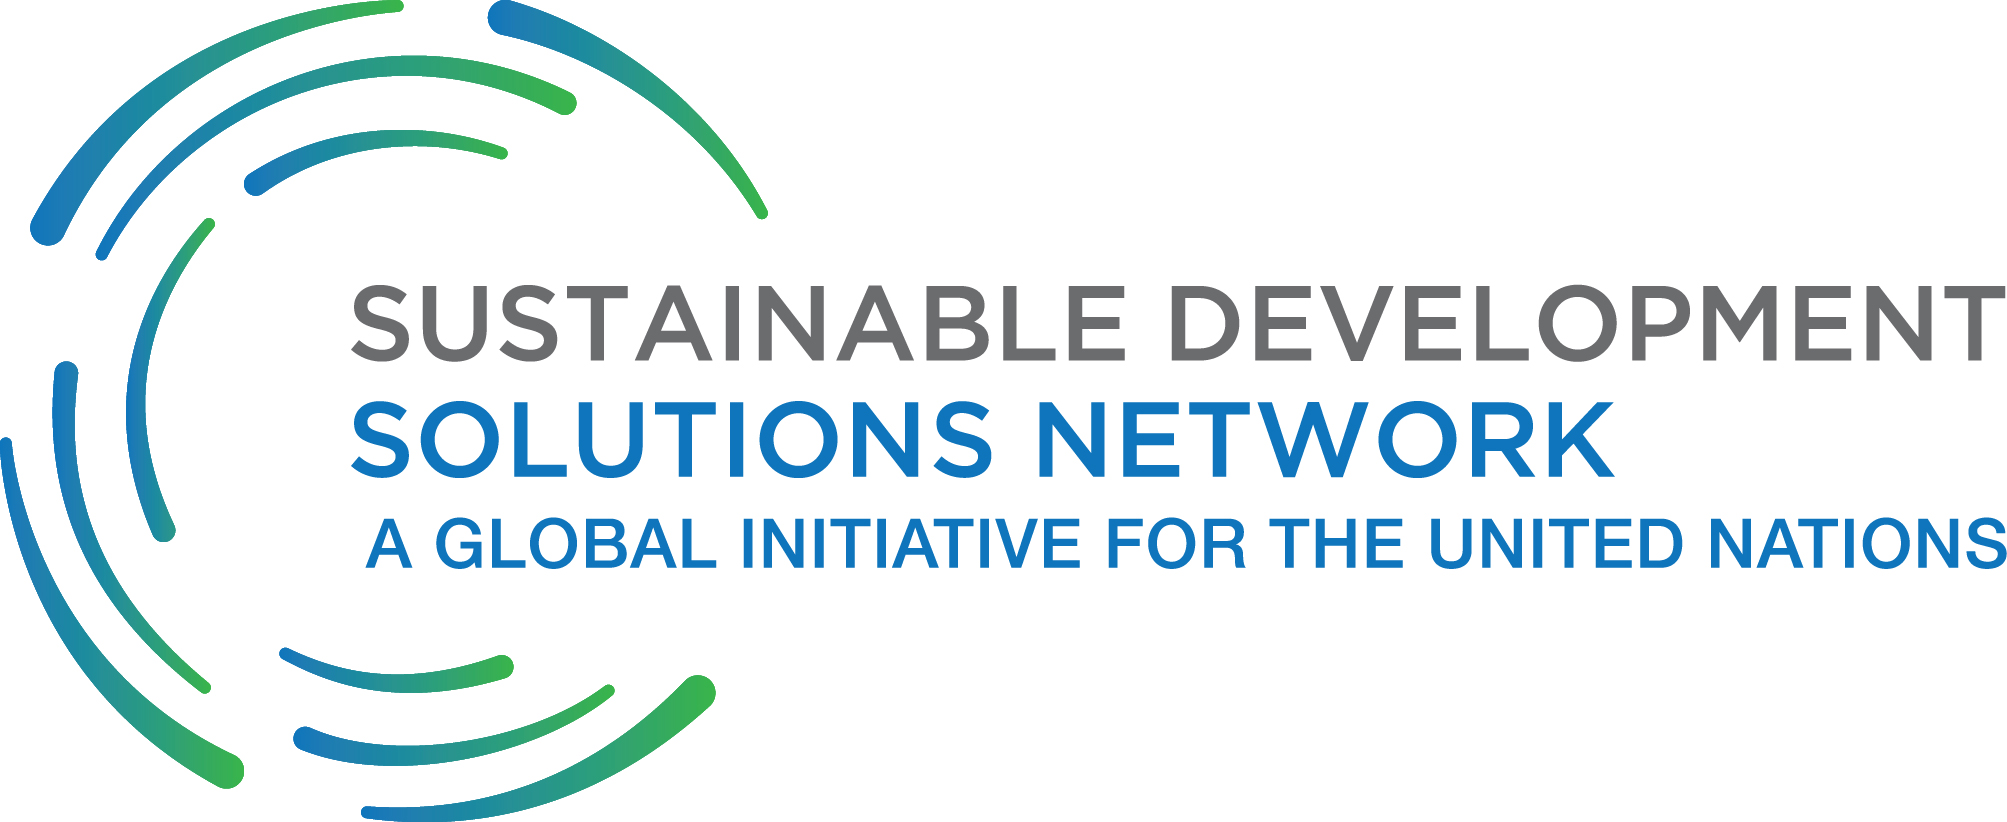 Nations Sustainable Development Solutions Network